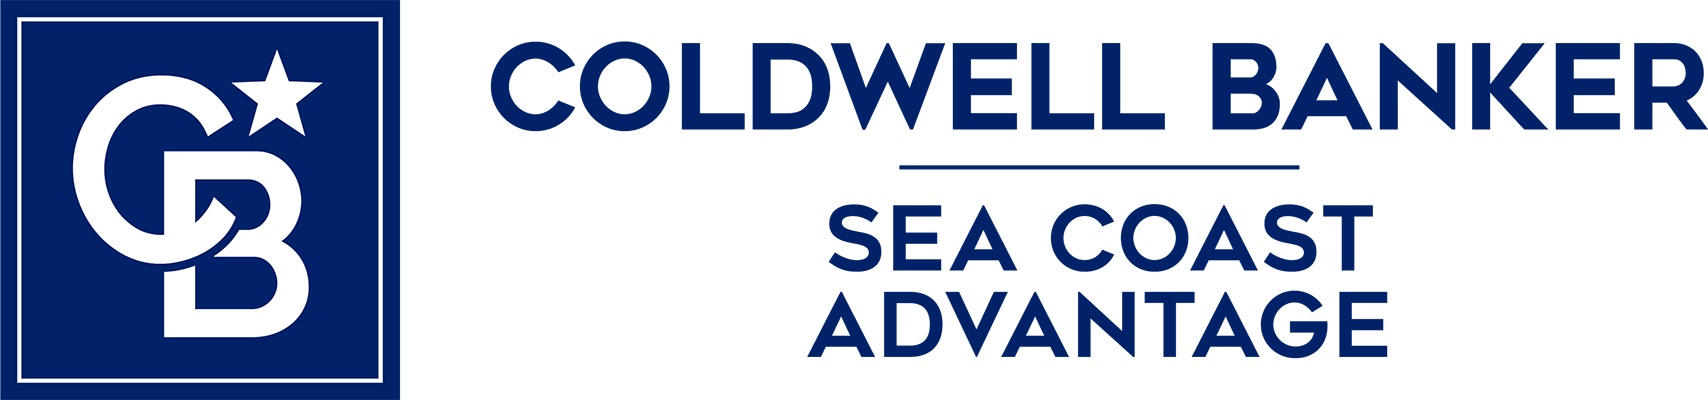 Gail Clements - Coldwell Banker Sea Coast Advantage Realty